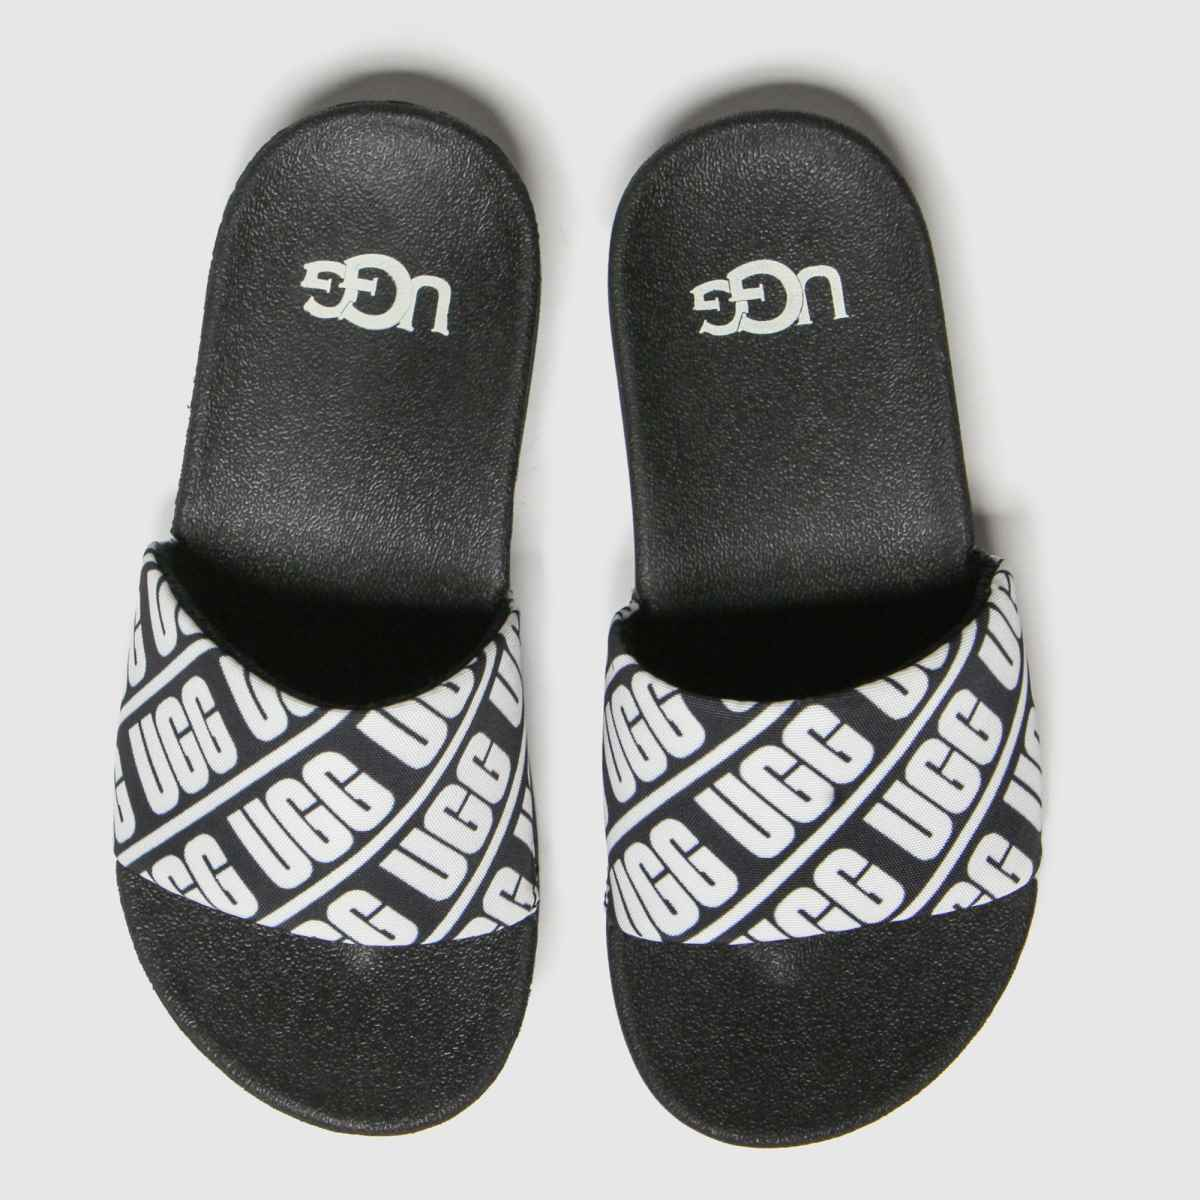 Ugg Black & White Beach Slide Trainers Junior